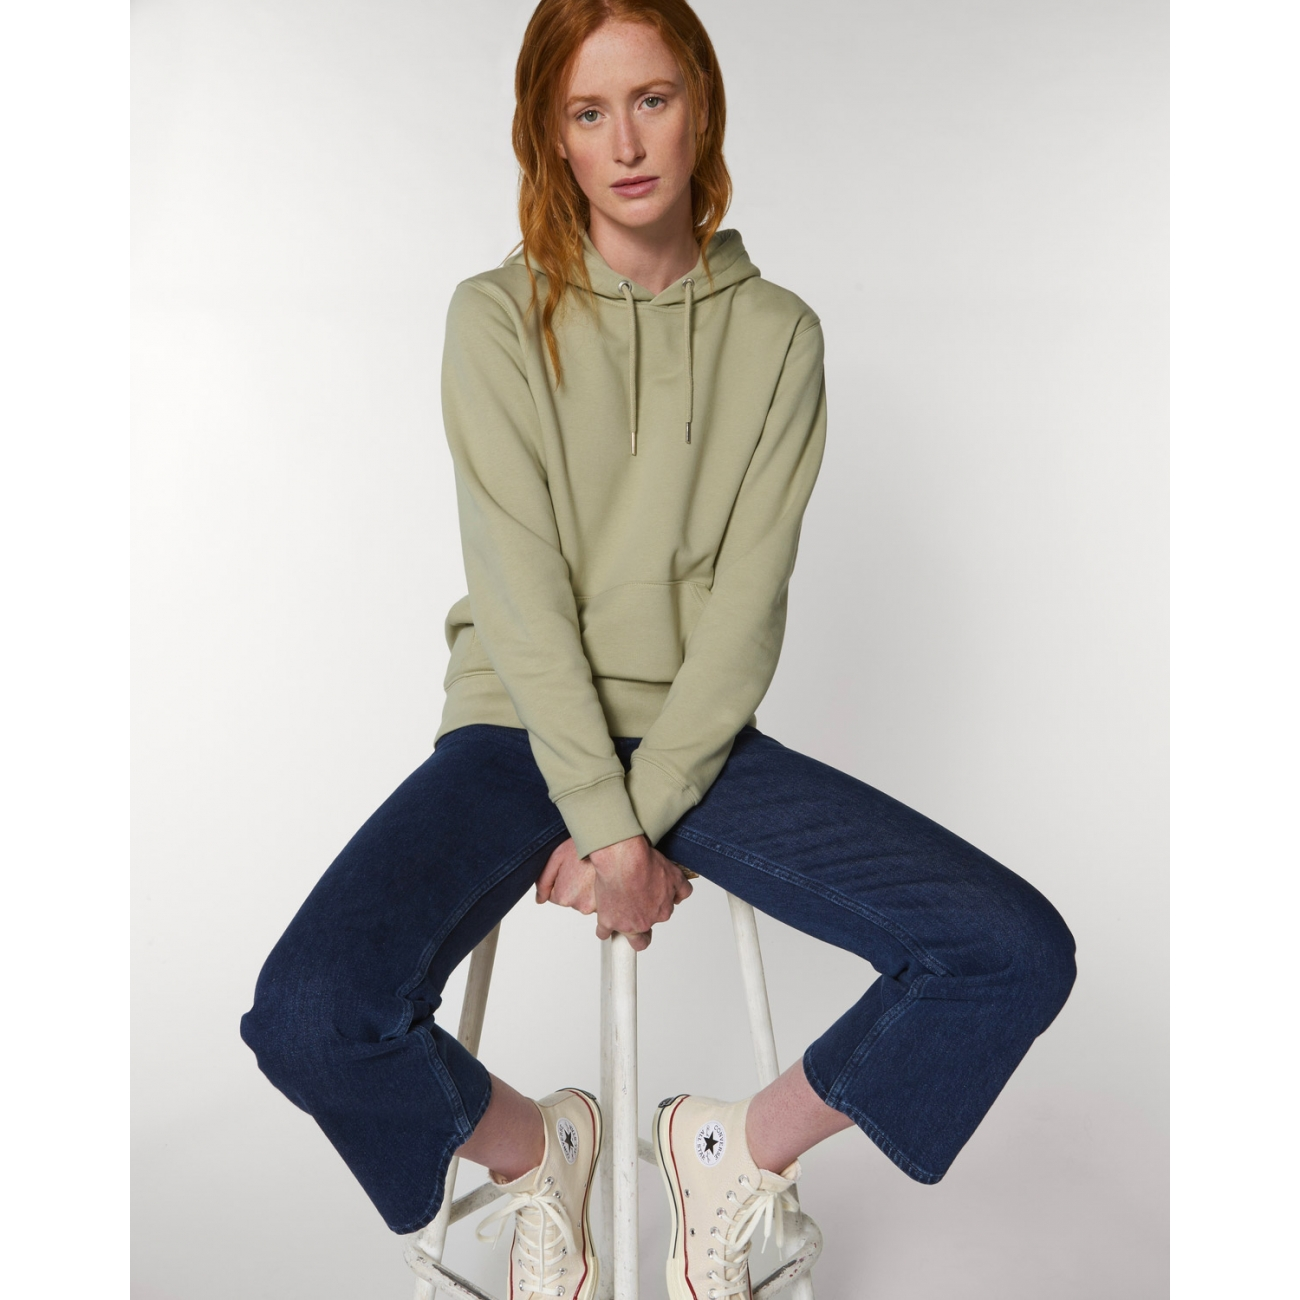 https://tee-shirt-bio.com/9896-thickbox_default/sweat-shirt-femme-capuche-epais-et-interieur-doux-coton-bio-vert-sauge.jpg